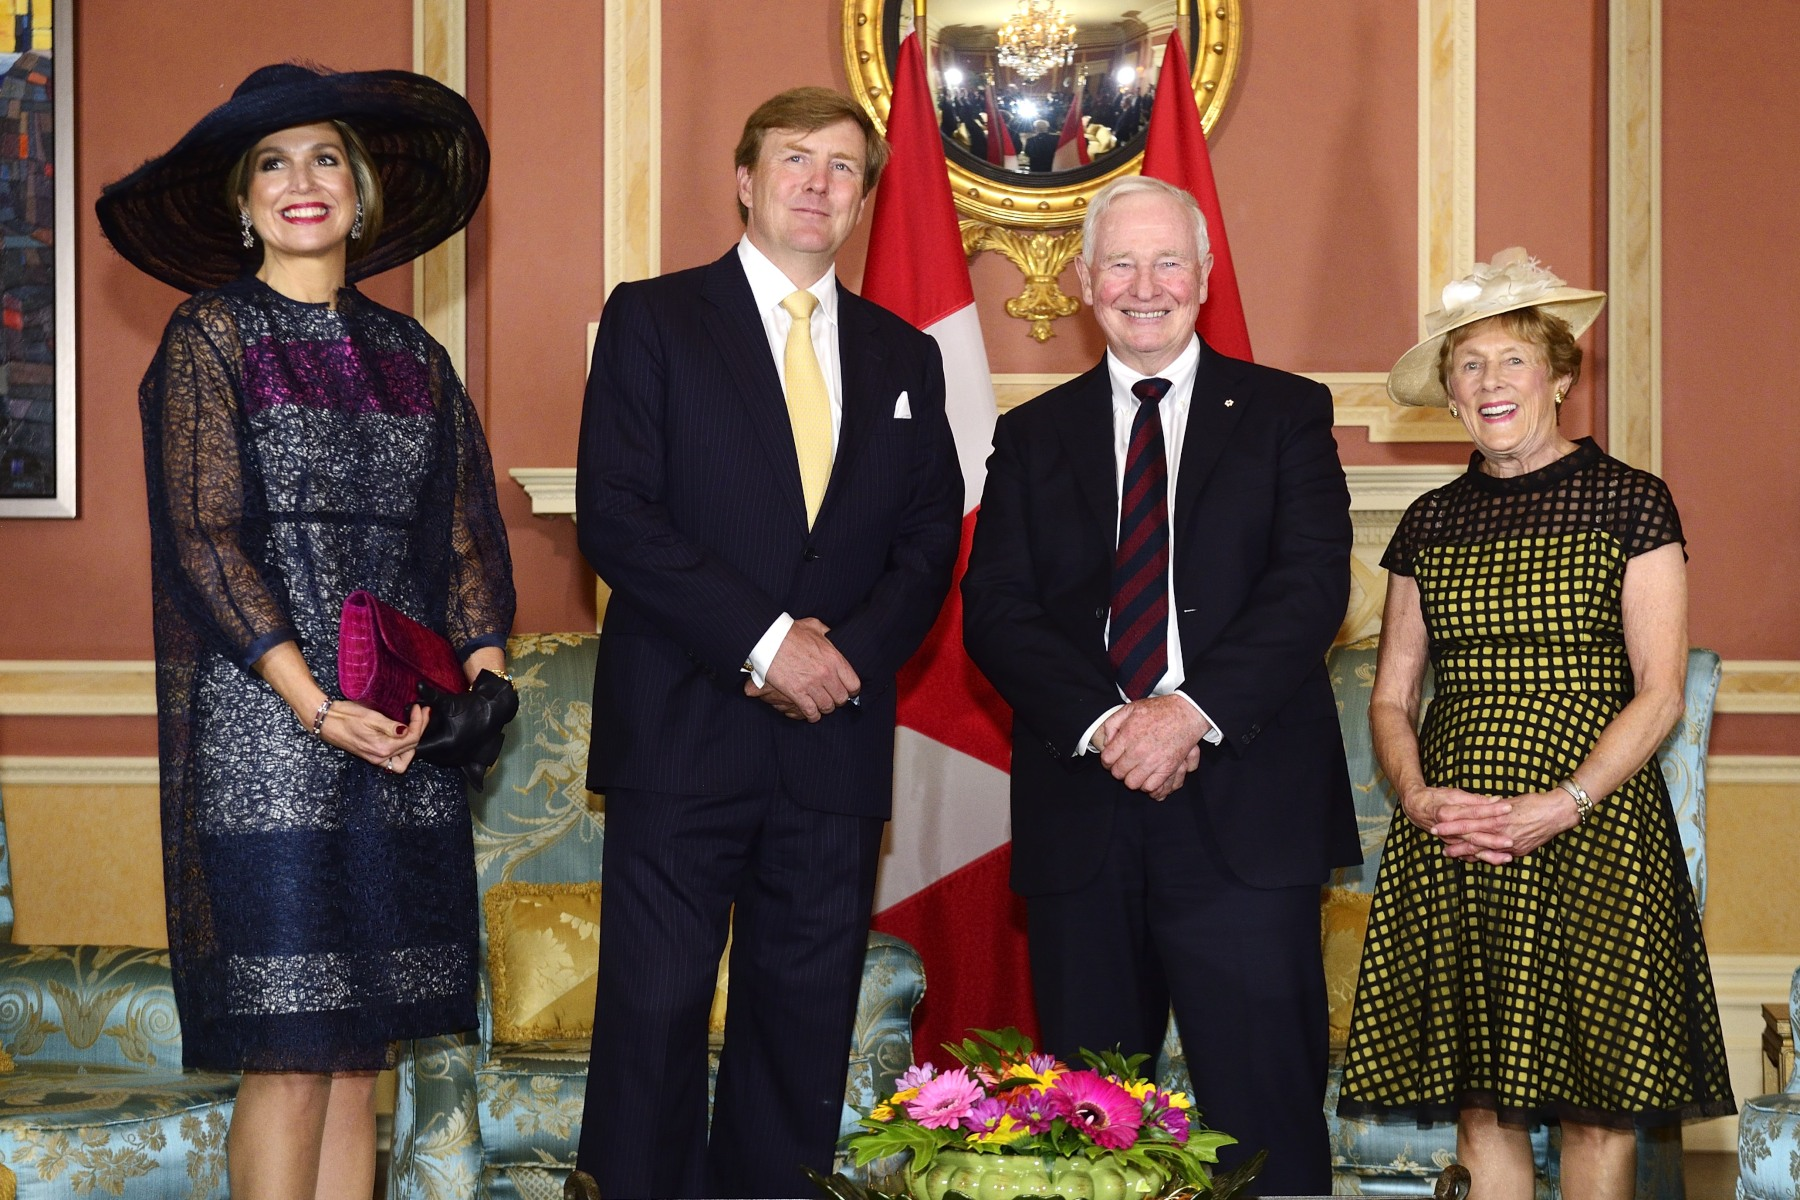 This year marks the 70th anniversary of the Liberation of the Netherlands during the Second World War. The State visit will highlight Canada's contribution to that historic struggle, and the tremendous friendship and co-operation between both countries.